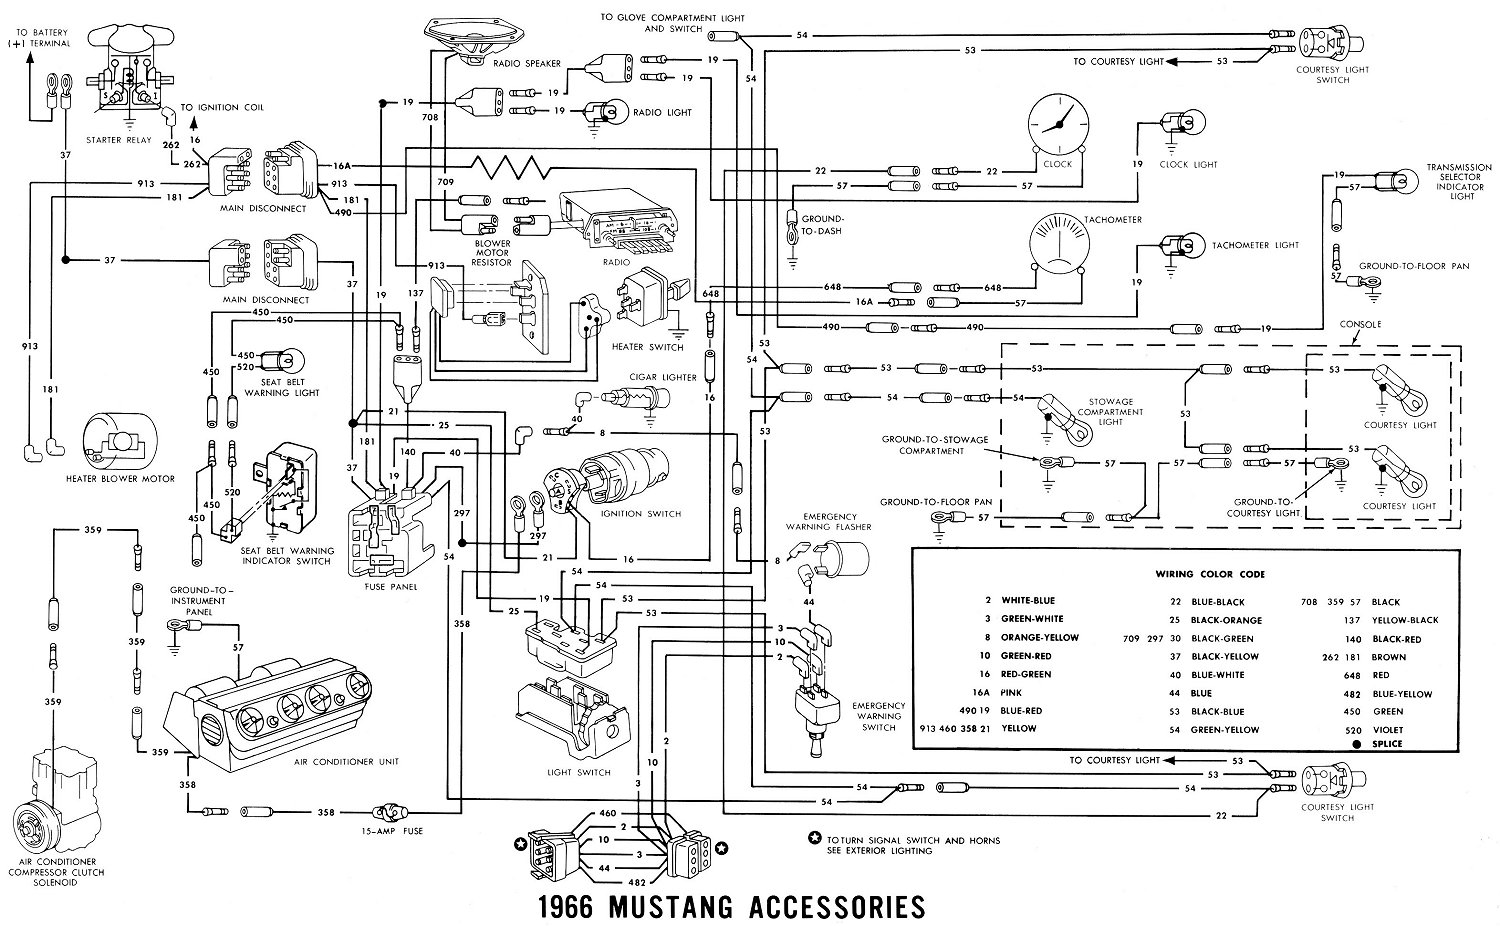 66acces1 1966 mustang wiring diagrams average joe restoration 2007 ford mustang gt wiring diagram at edmiracle.co